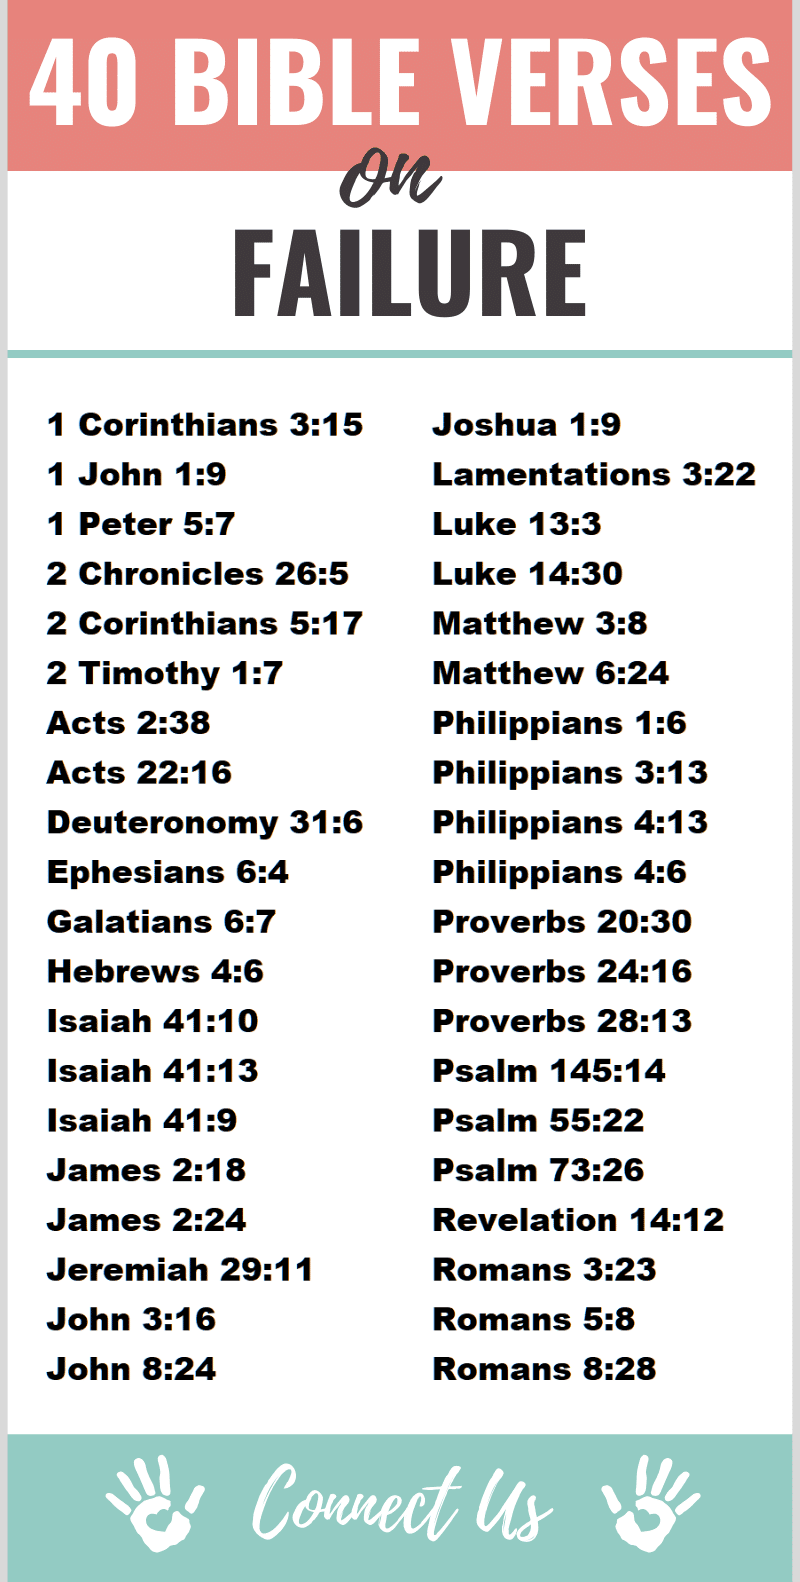 Bible Verses on Failure